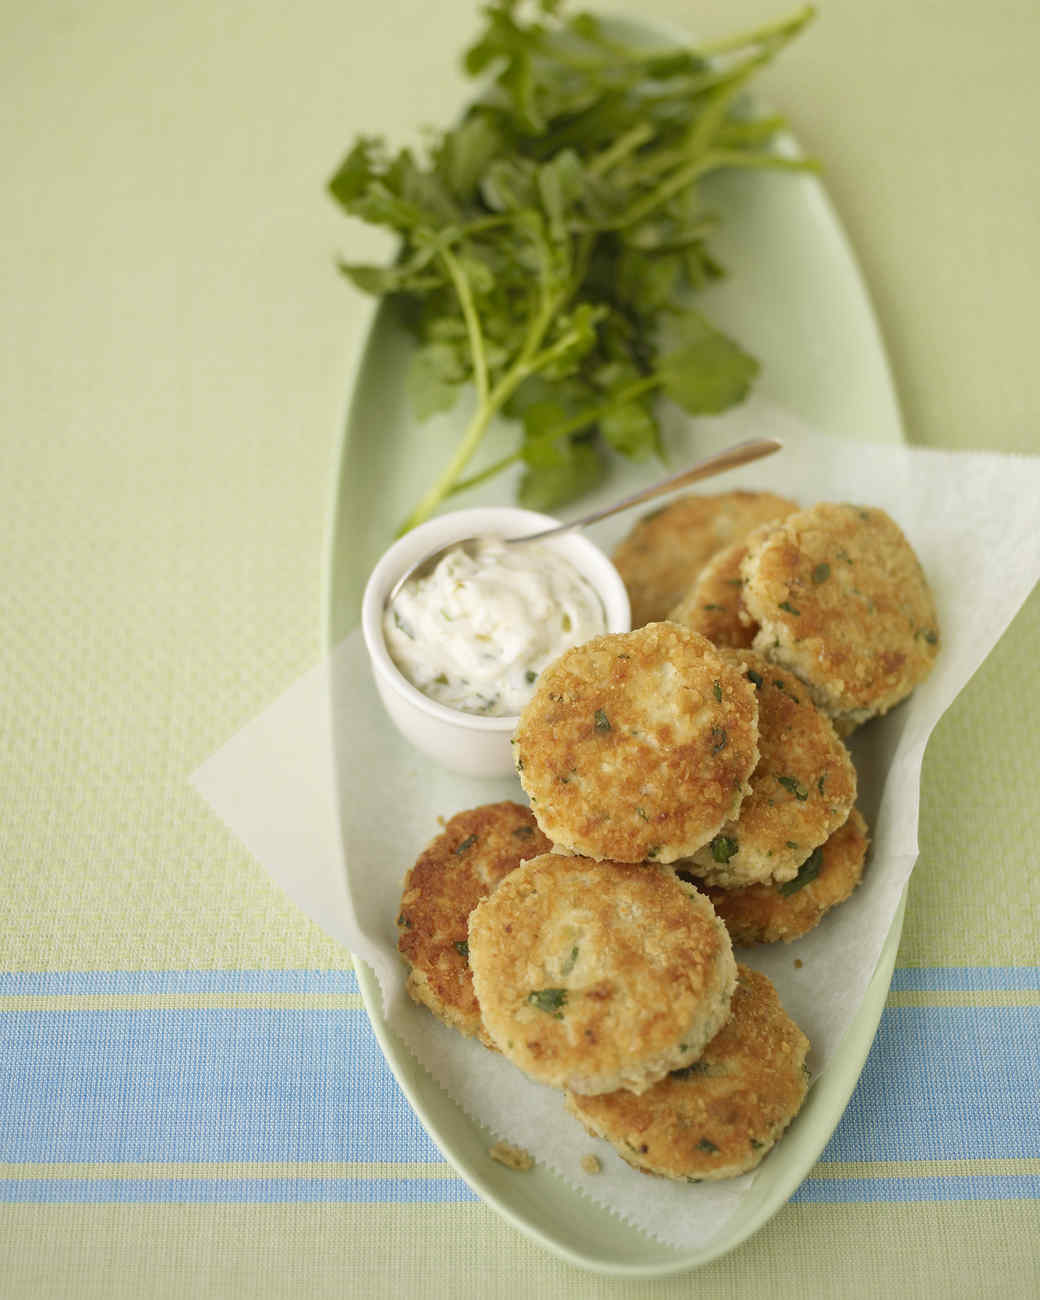 Lemon-Horseradish Fish Cakes